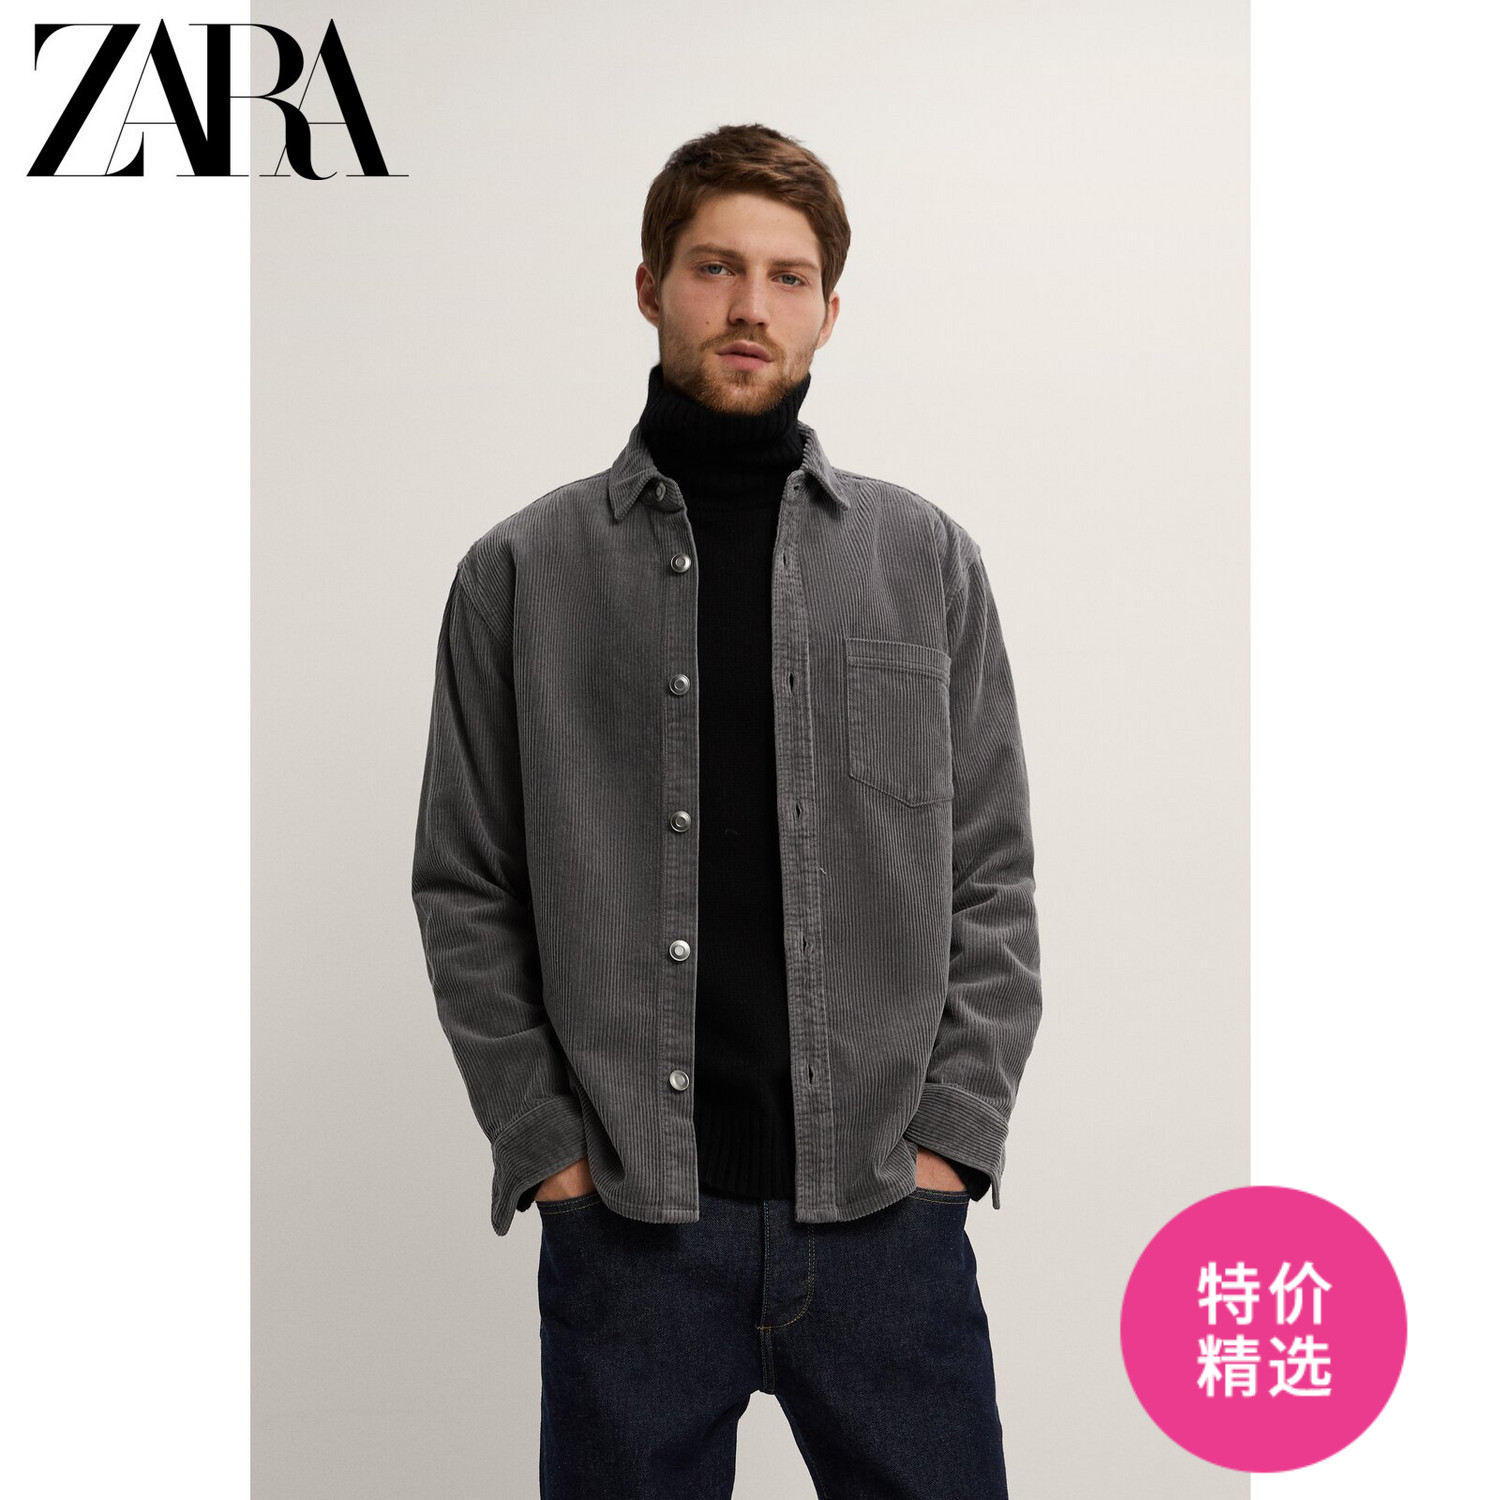 ZARA new men's corduroy shirt jacket jacket 01123400802